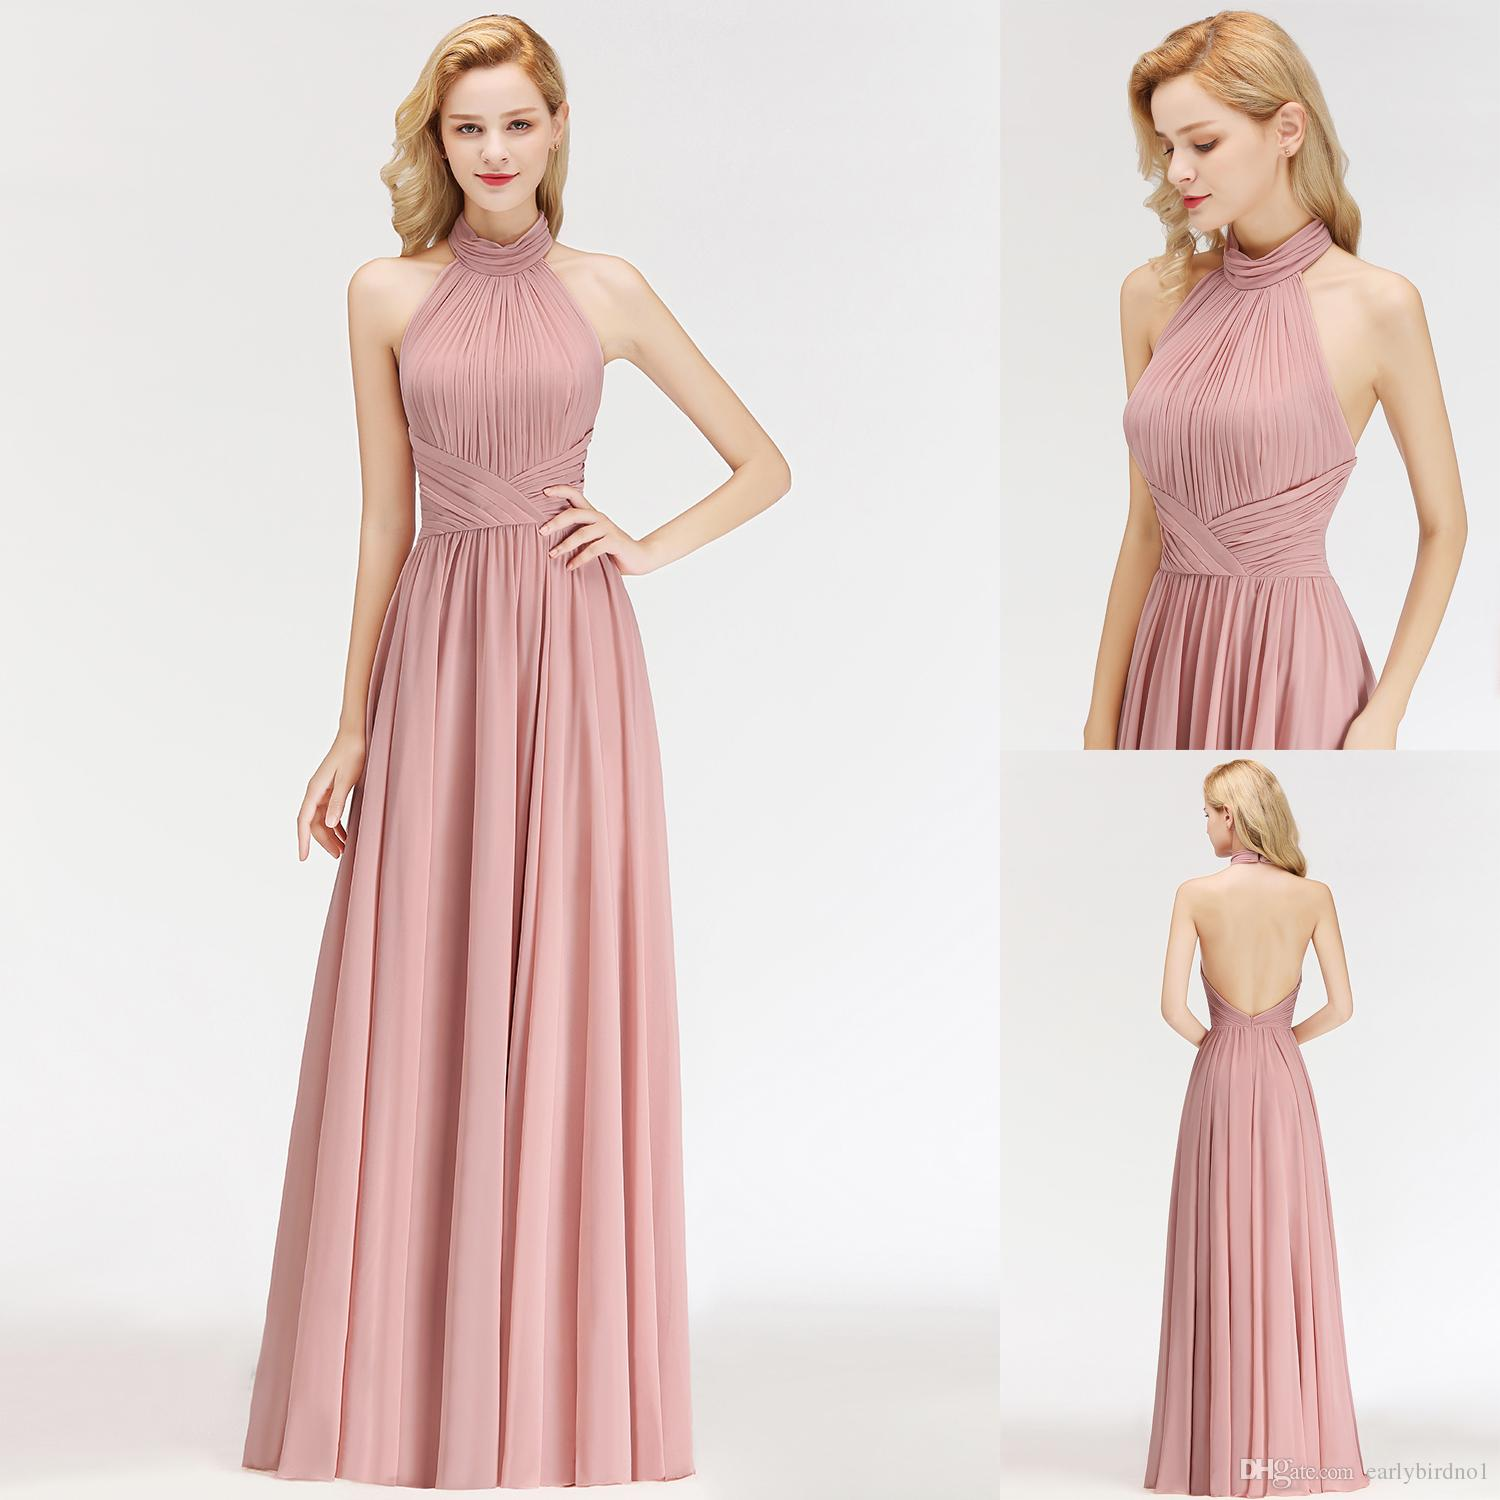 d146e4f170b2 Elegant Blush Pink Chiffon Prom Dresses 2019 New Sexy Halter Backless  Ruched Pleats Floor Length Formal Evening Party Gown CPS1058 Black Occasion  Dresses ...